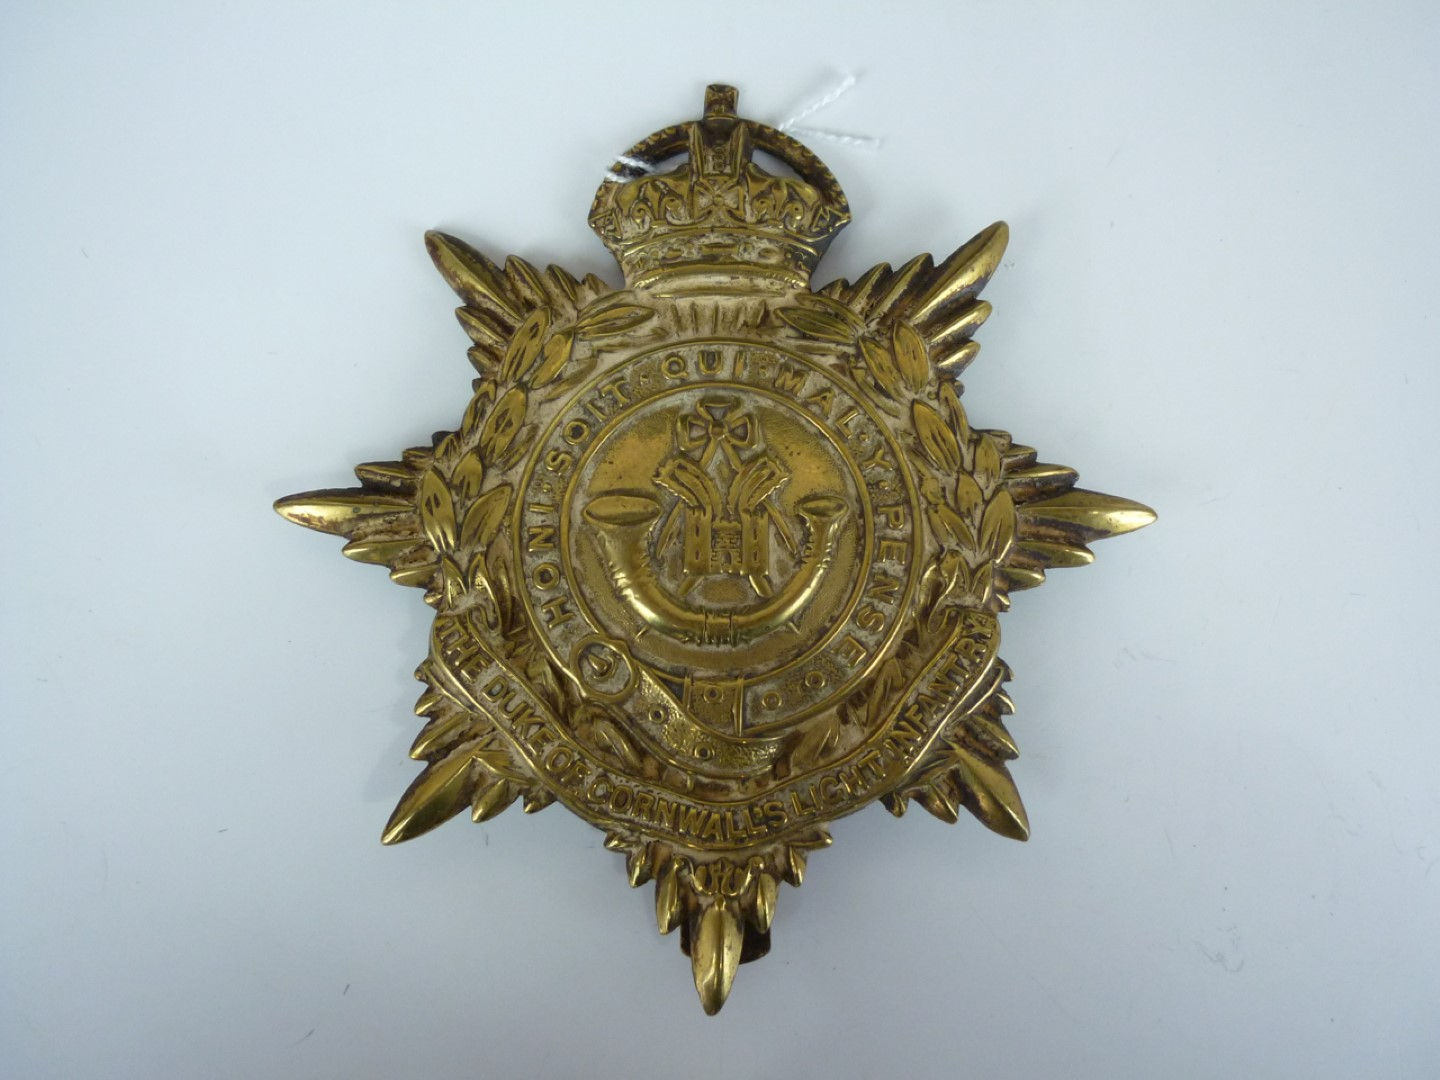 Lot 74 - A post 1901 Duke of Cornwall's Light Infantry other rank's pagri badge